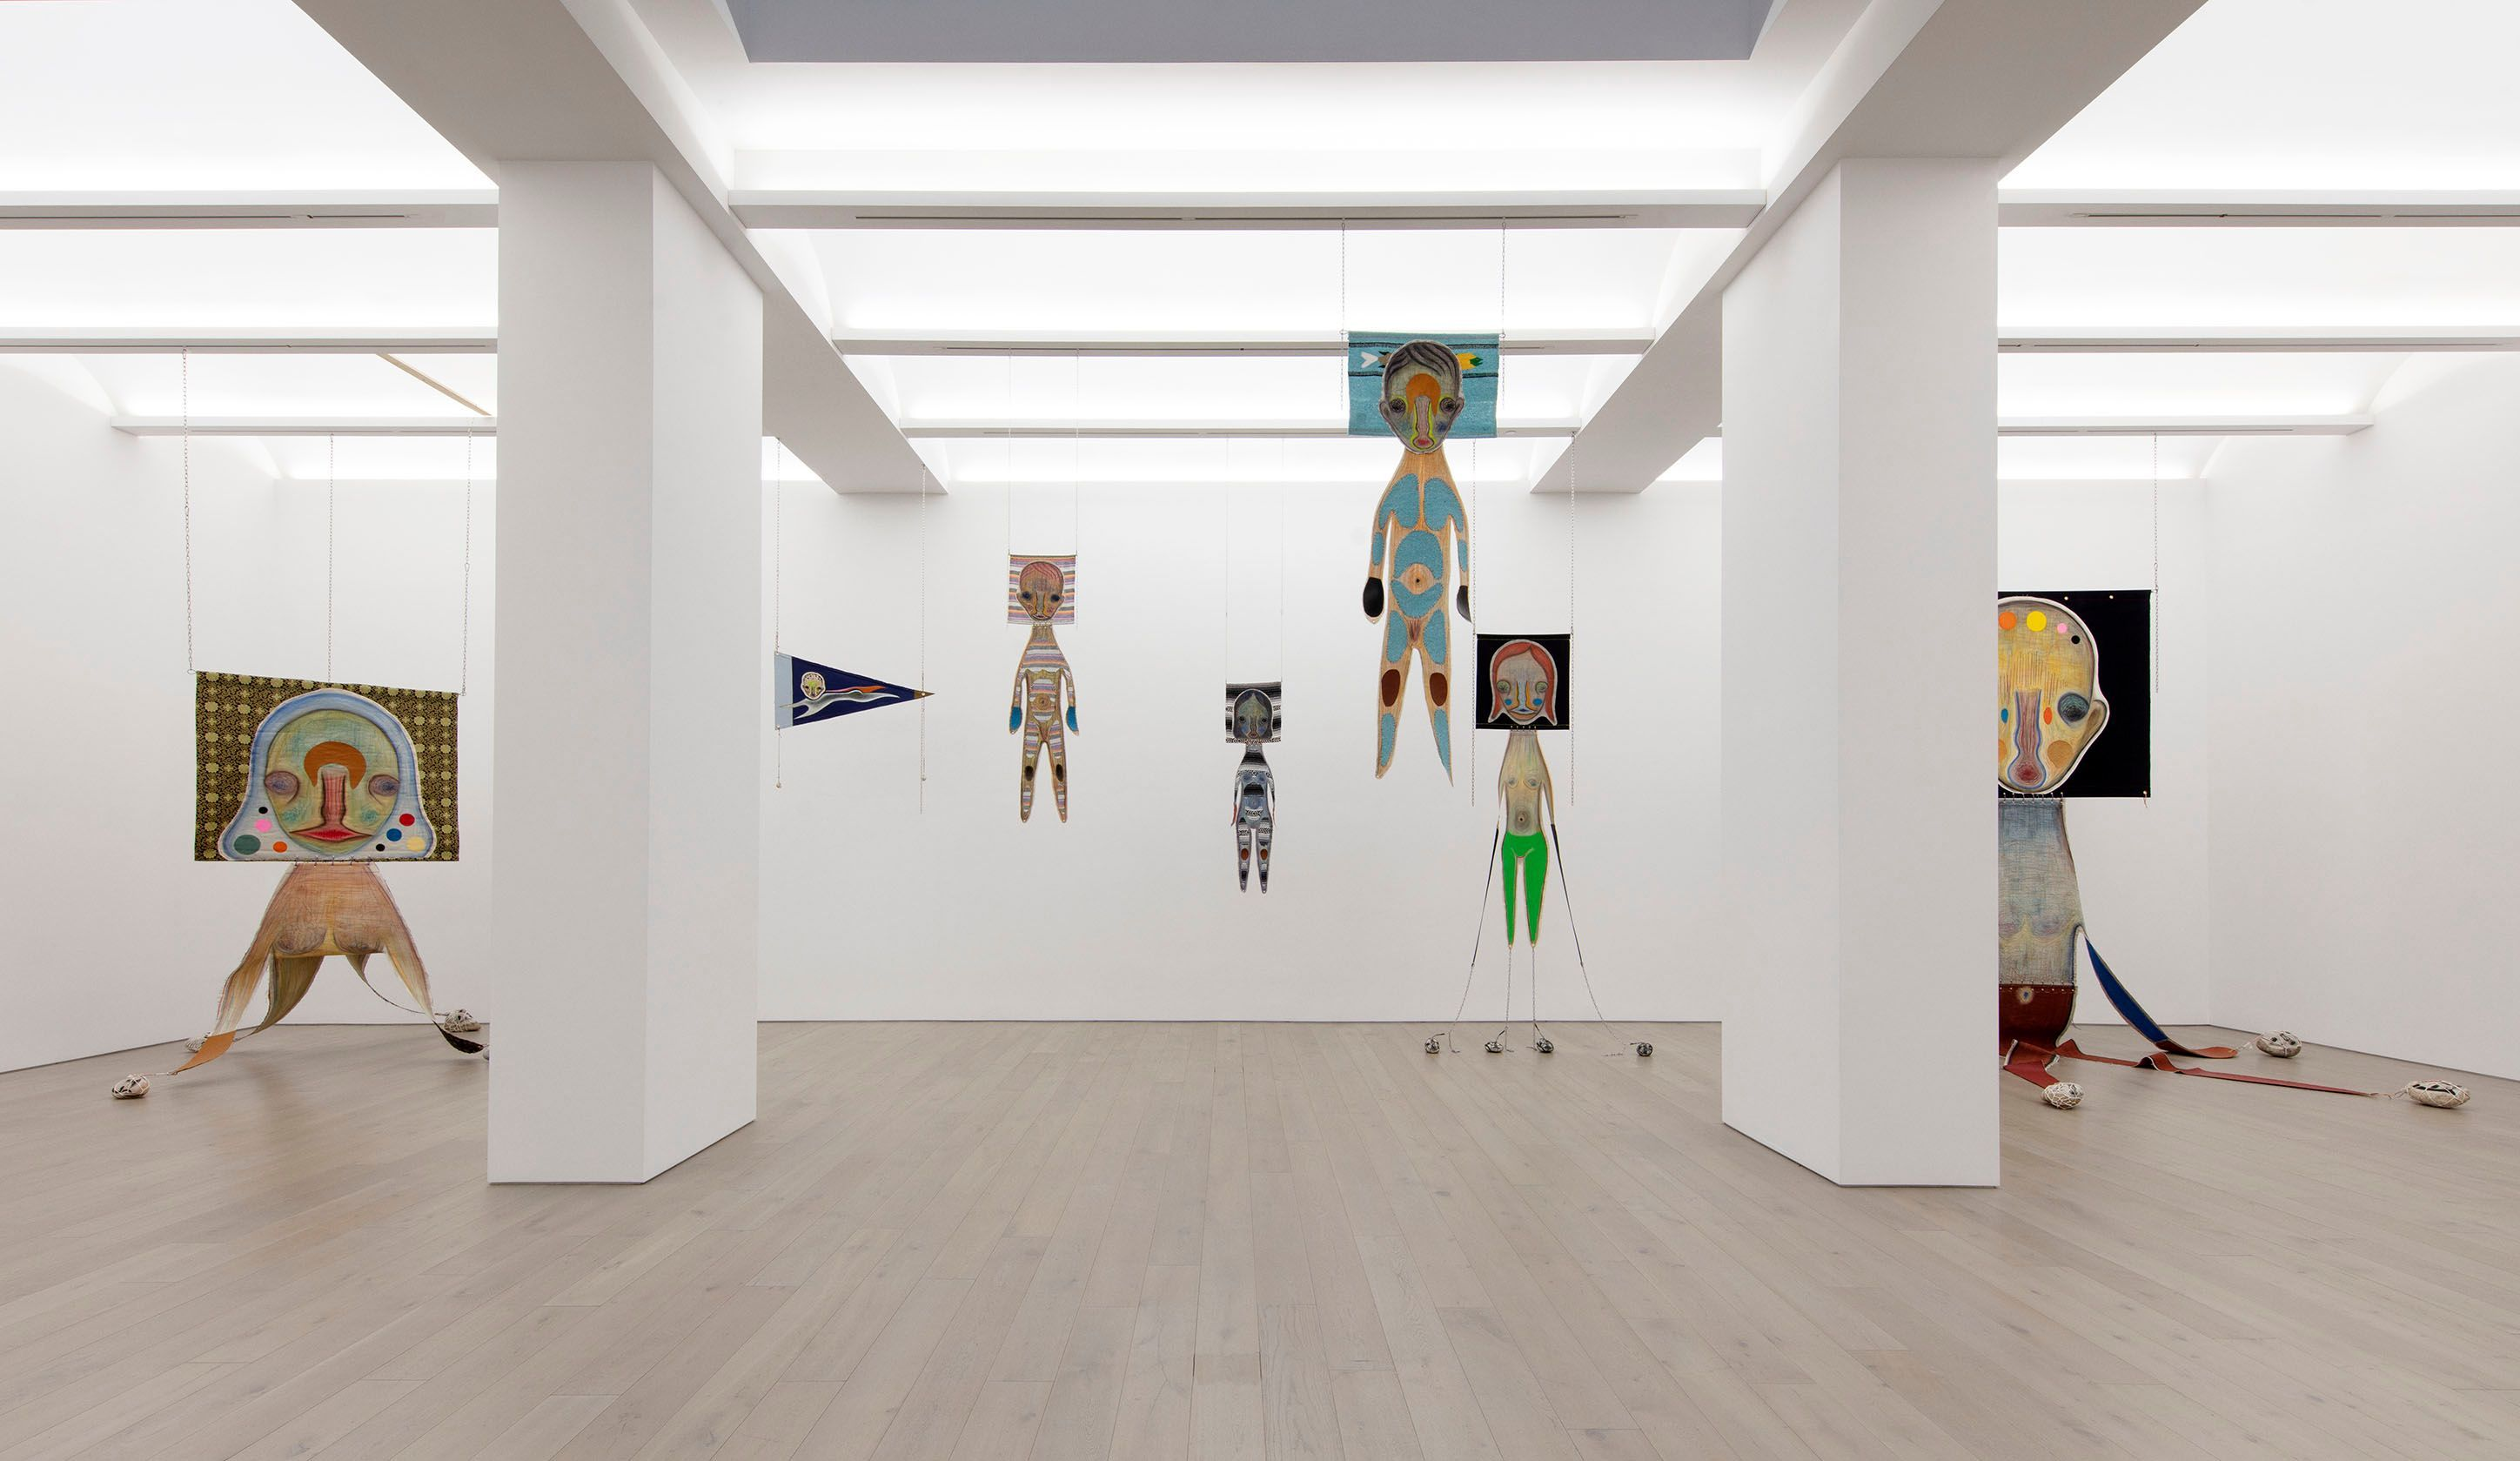 Exhibition View of Izumi Kato at Perrotin New York, 2021. ©Izumi Kato. Courtesy of the artist and Perrotin.